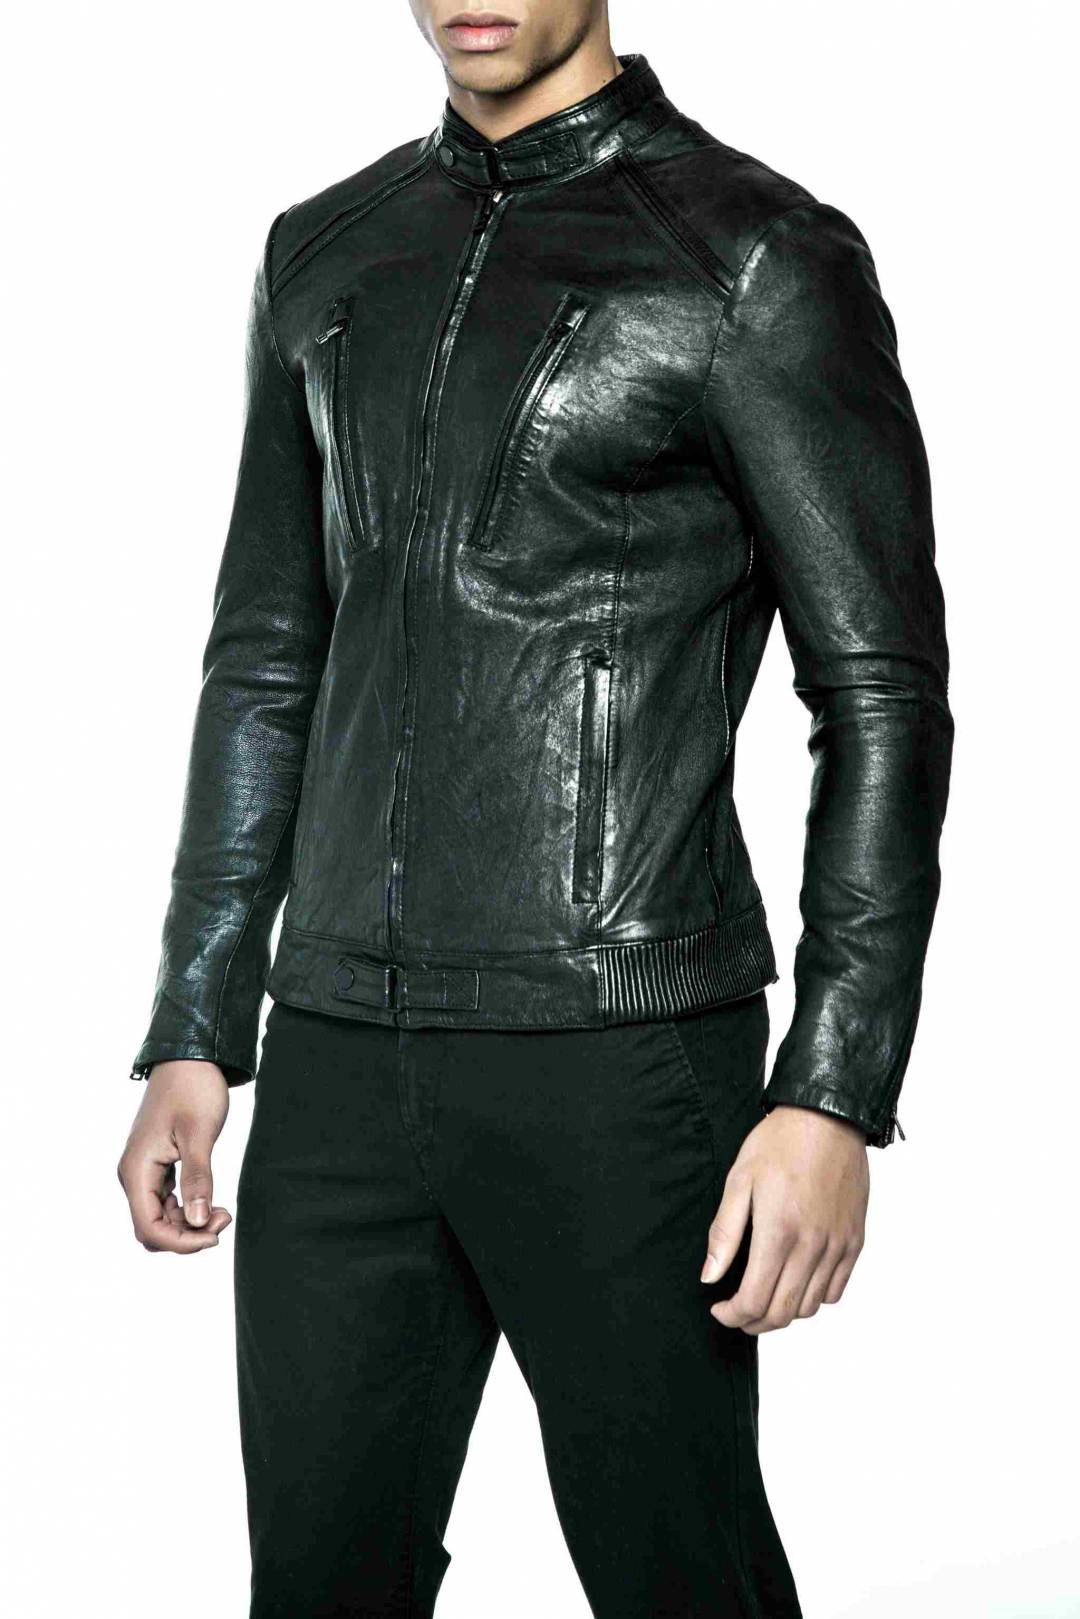 Leather Jackets by Bano eeMee